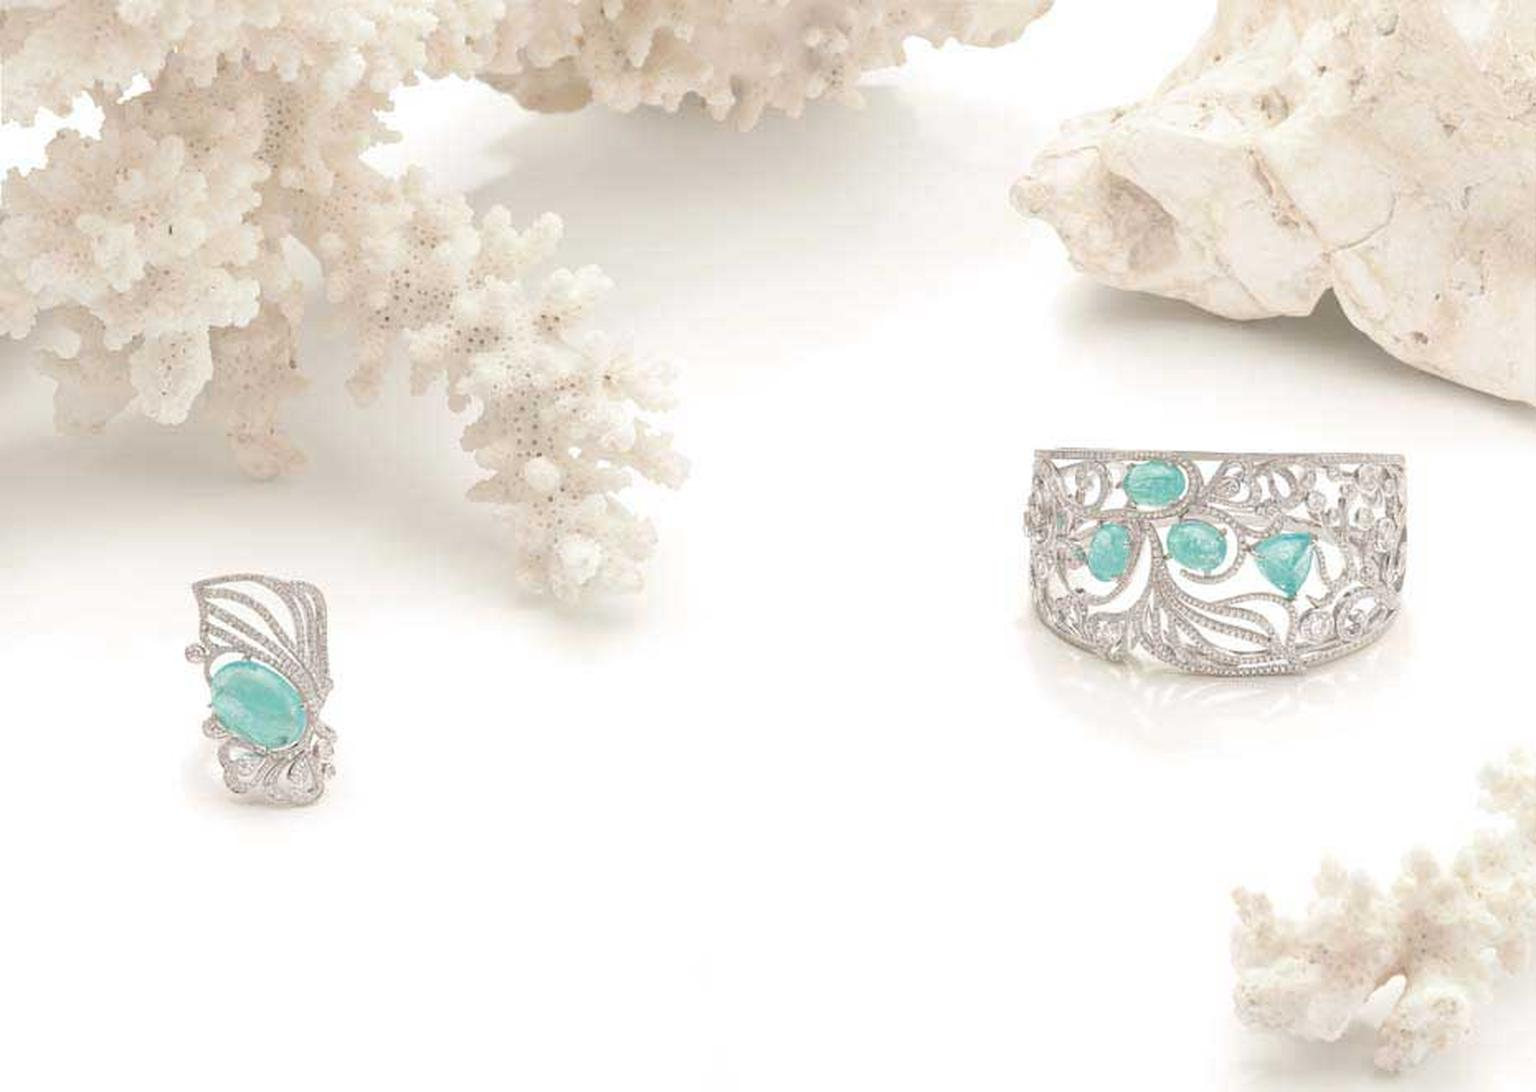 Boodles Atlantic Blue cuff and ring with Paraiba tourmalines and diamonds, from the new 'Ocean of Dreams' collection.